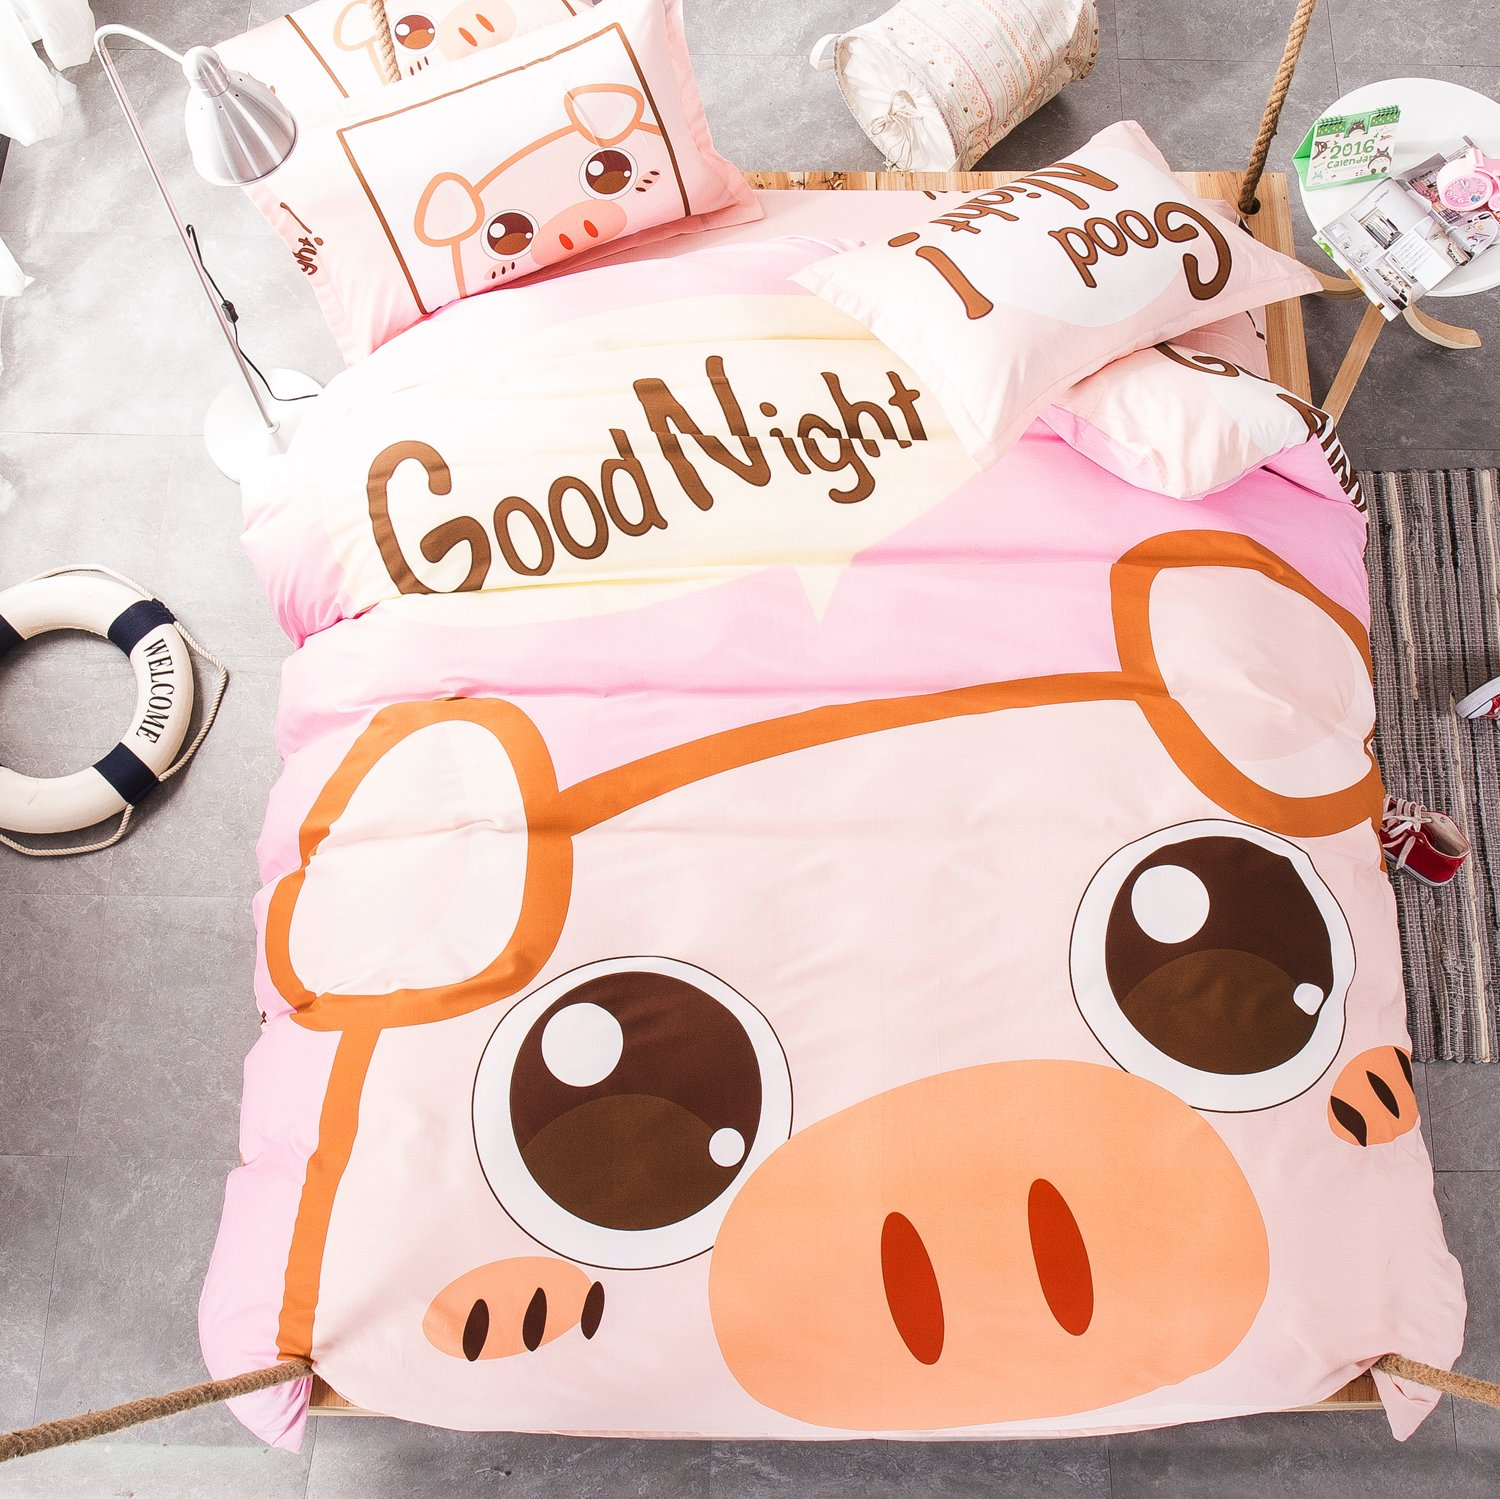 Mumgo Home Bedding Sets for Kids 100% Cotton Cute Cartoon Animal Good Night Print Duvet Cover Set Full/Queen Size 4 Piece -Not Include Comforter (Cute Pig)